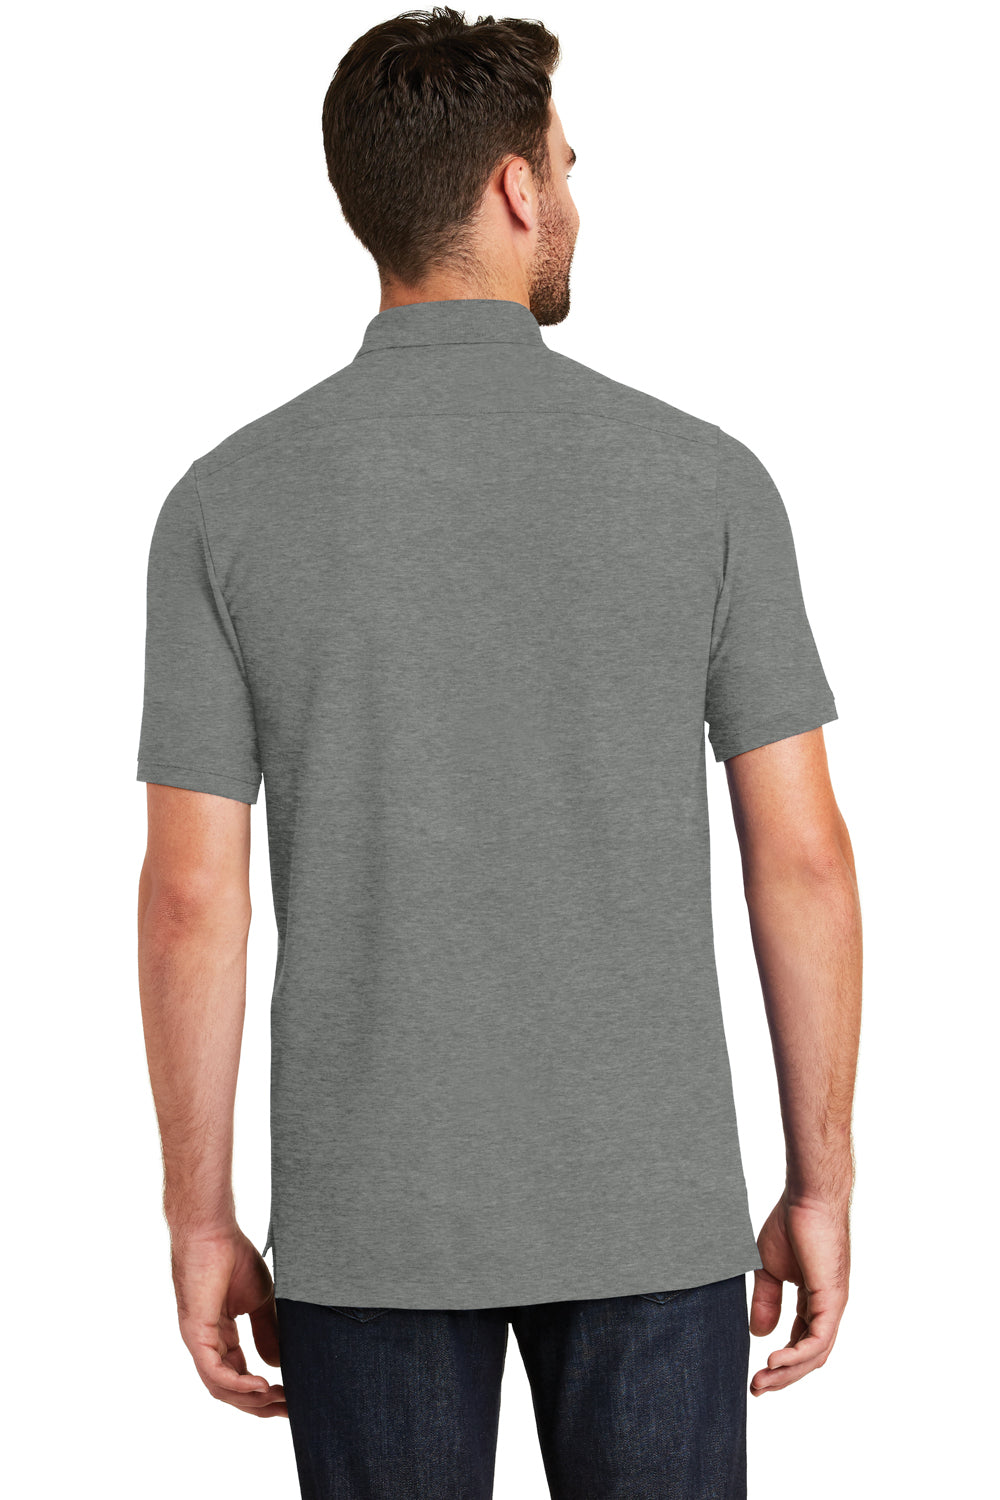 New Era NEA300 Mens Venue Home Plate Moisture Wicking Short Sleeve Polo Shirt Heather Graphite Grey Back